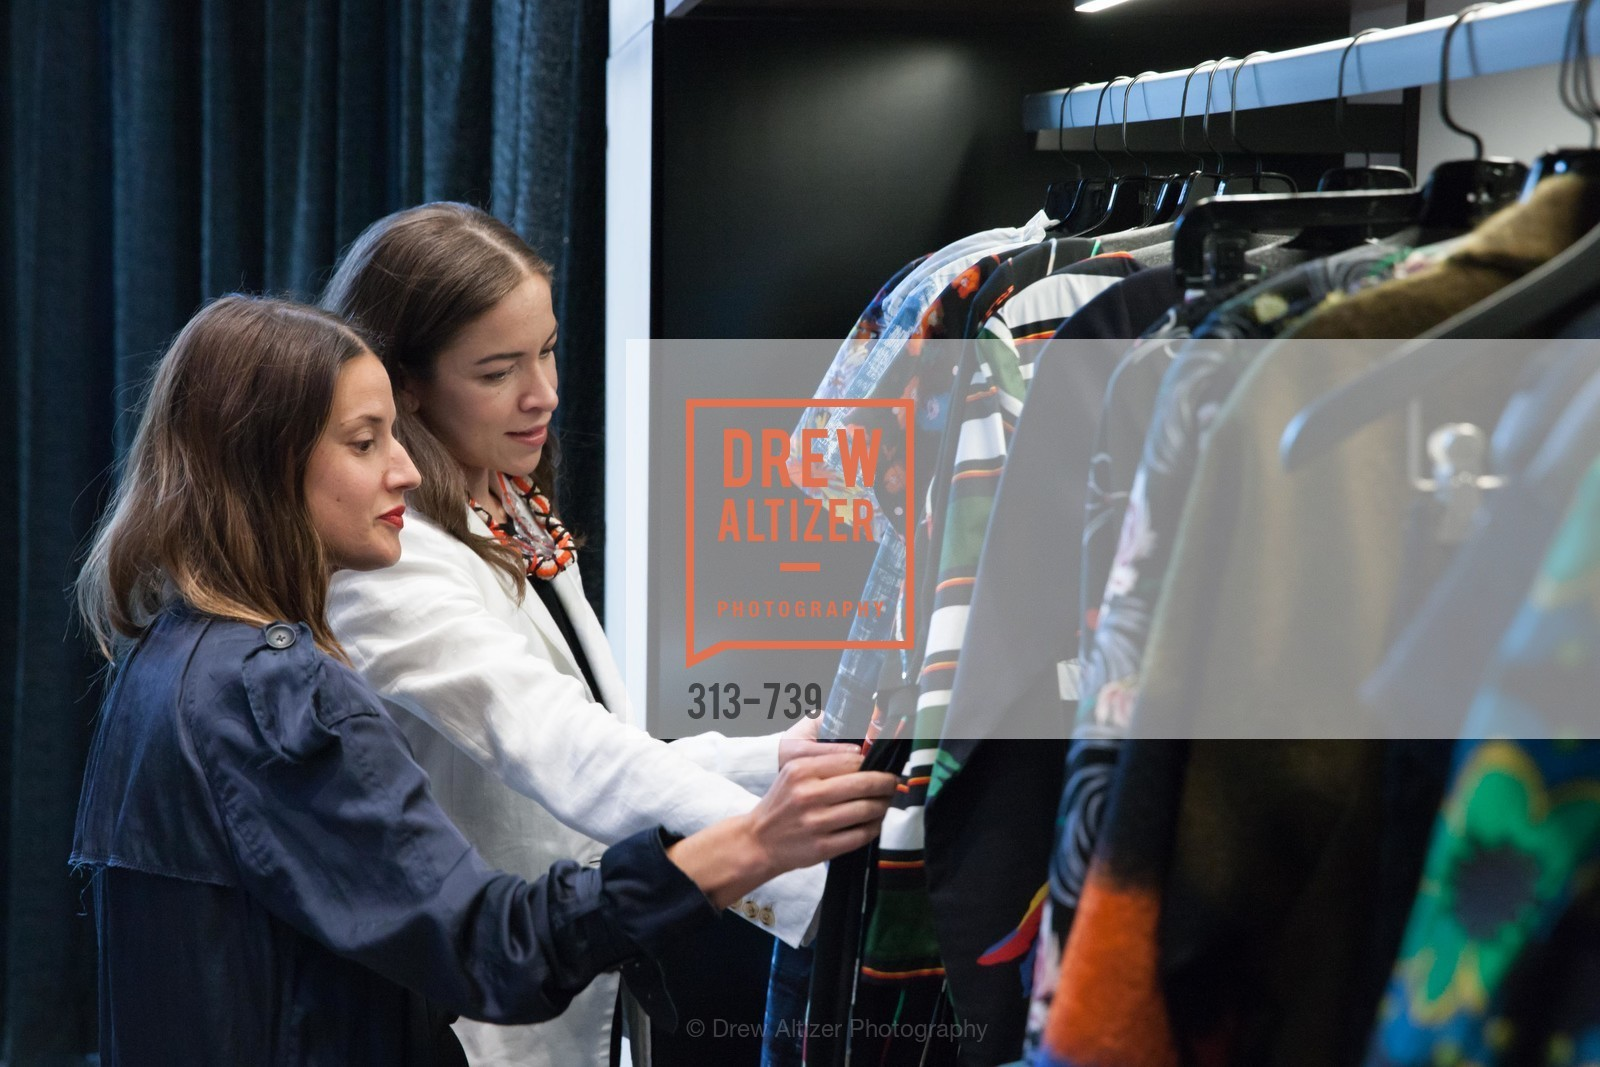 Rachel Walters, Allison Hall, BETTY LIN Store Opening - VIPS, US, May 20th, 2015,Drew Altizer, Drew Altizer Photography, full-service agency, private events, San Francisco photographer, photographer california